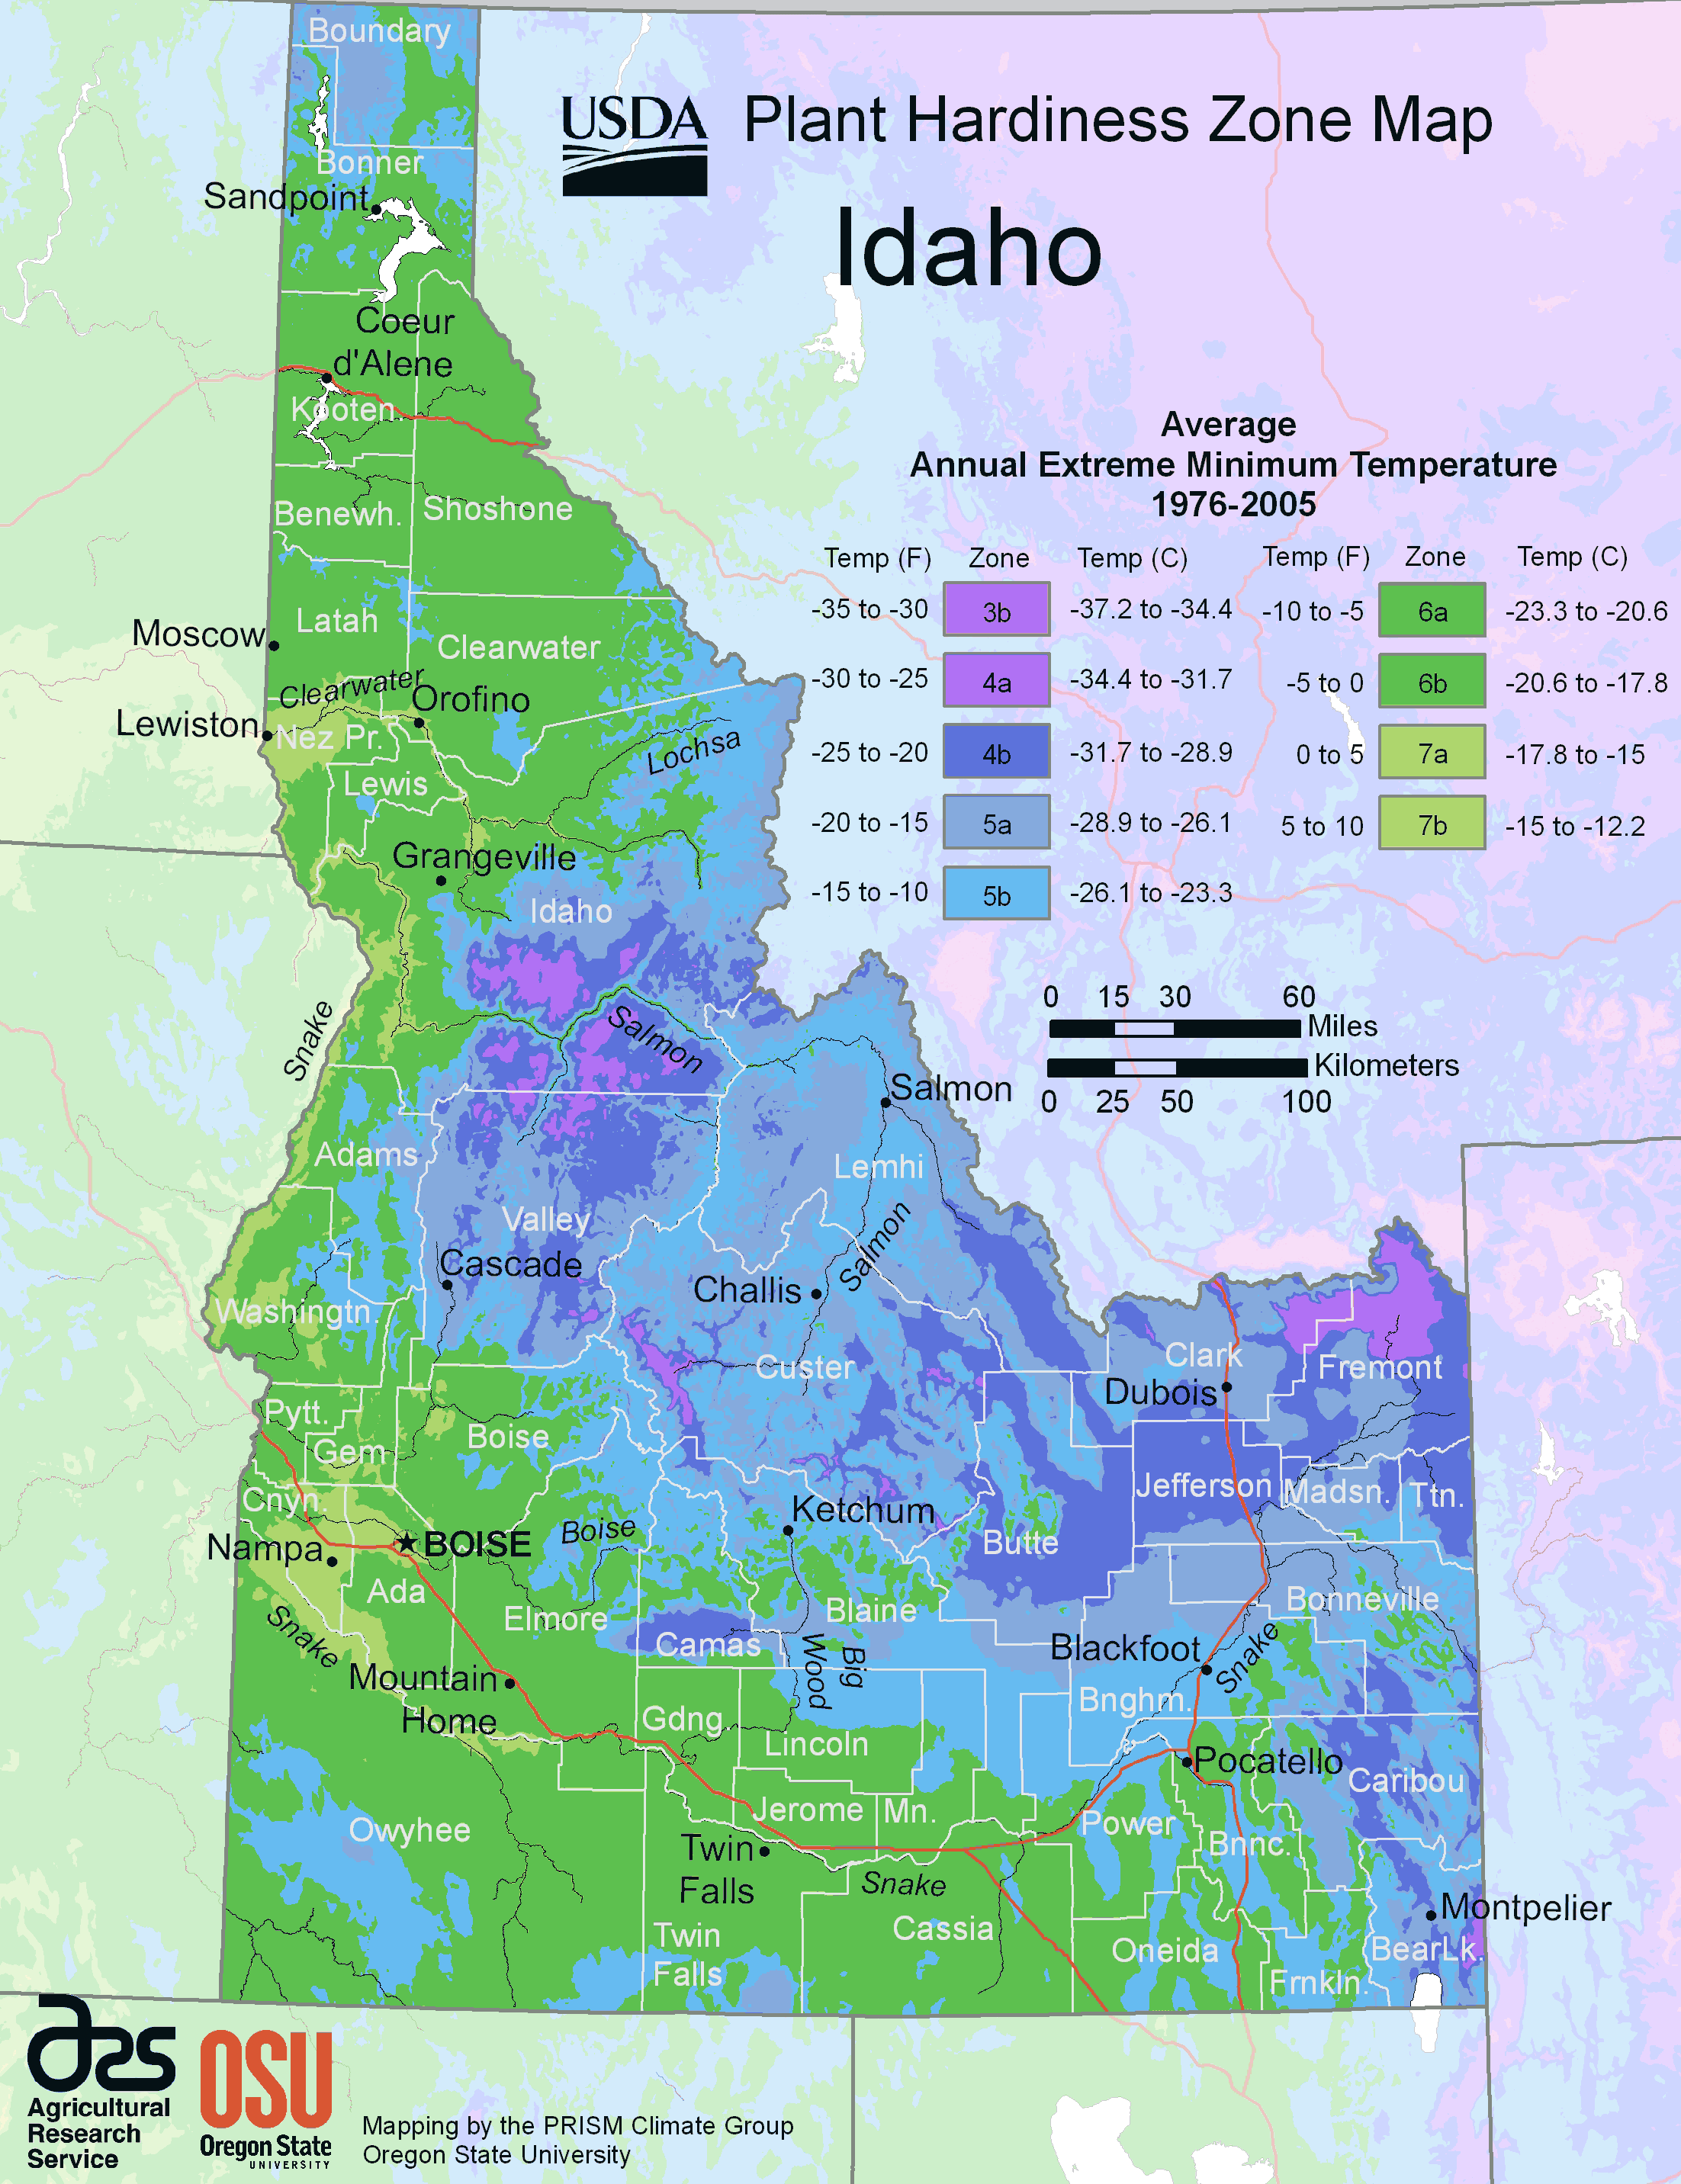 Idaho Plant Hardiness Zone Map Mapsofnet - Physical map of idaho